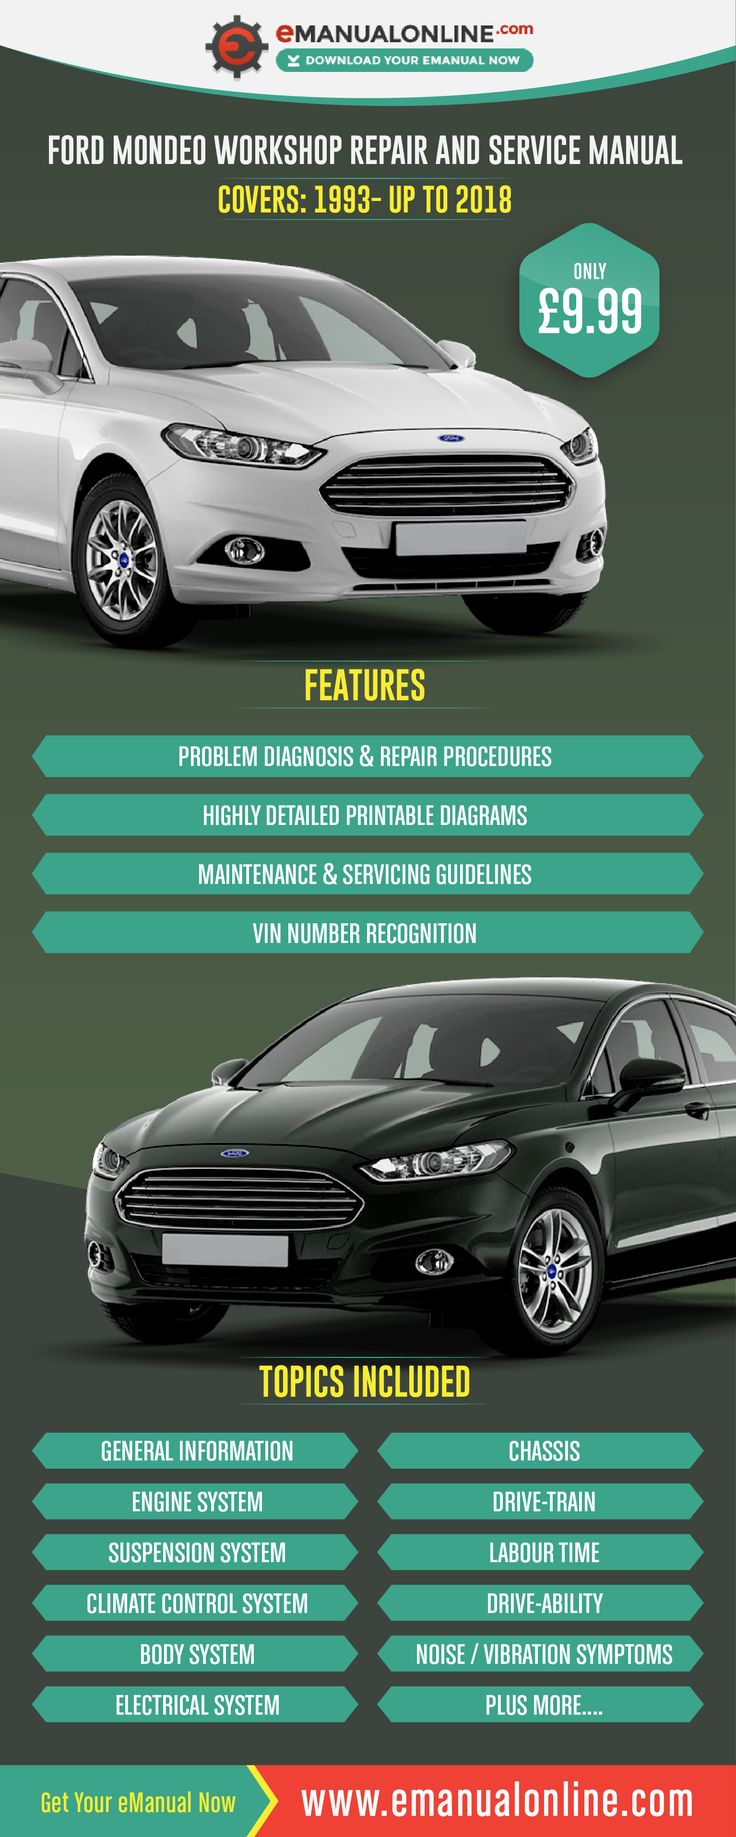 ford mondeo owners manual free download